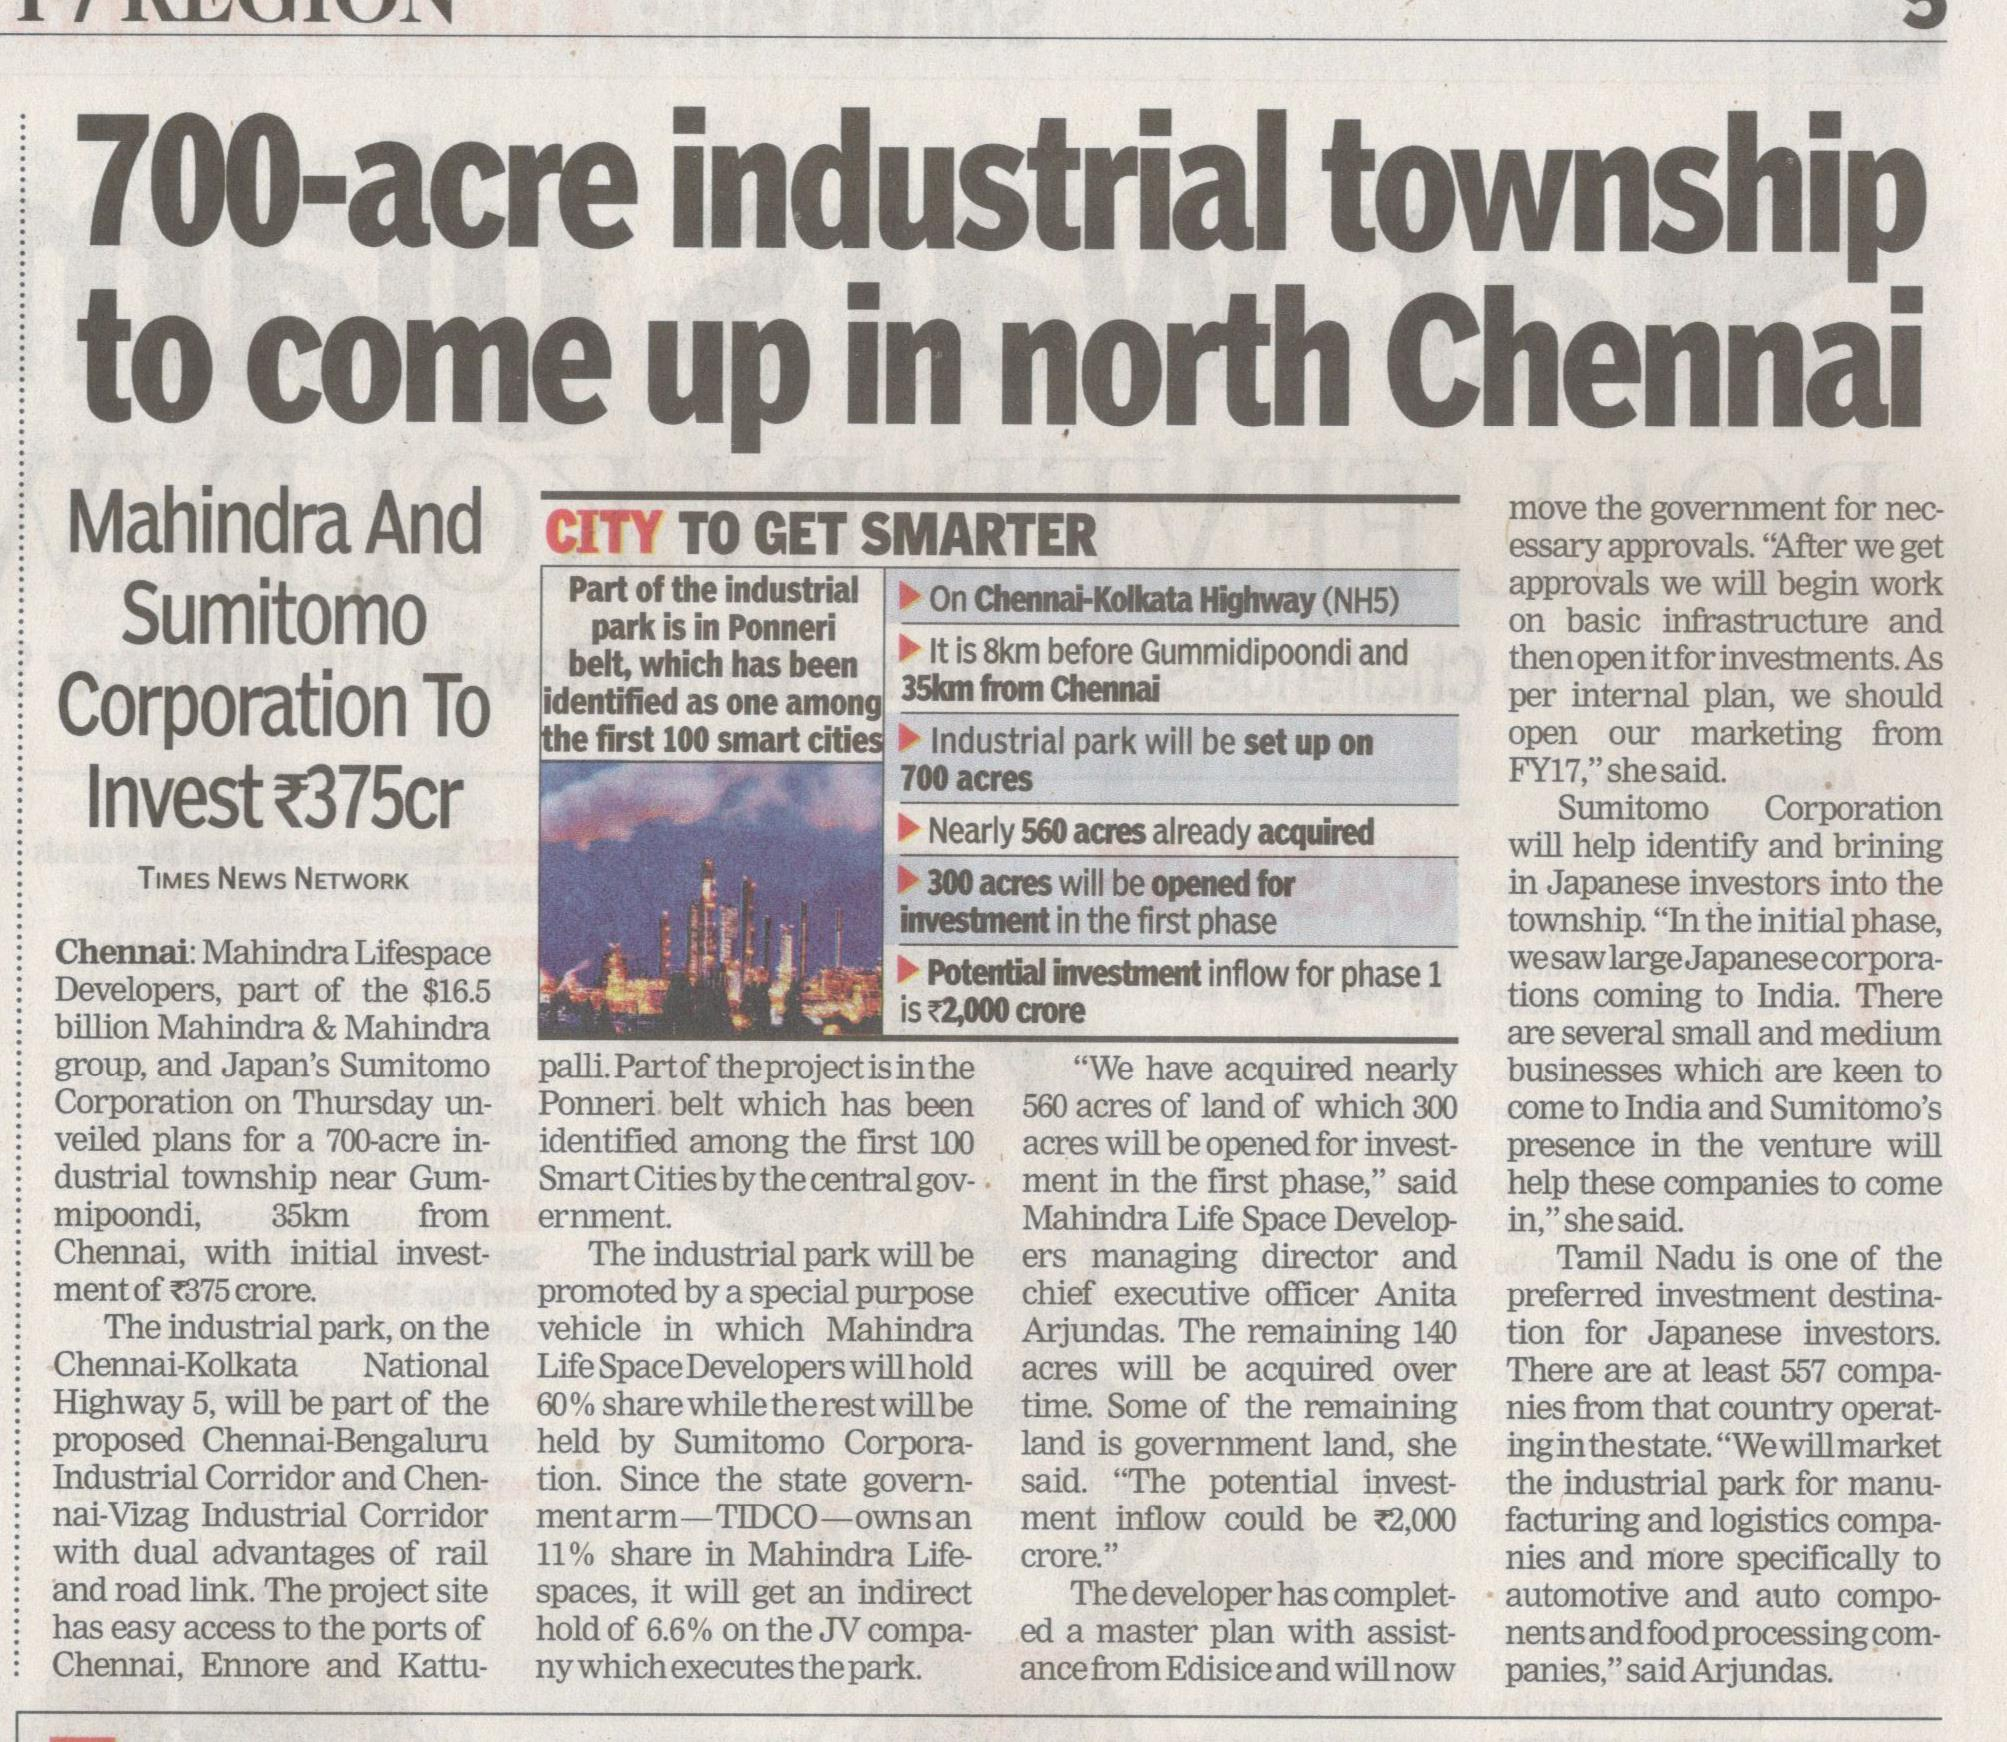 700 Acre Industrial township to come up in North Chennai